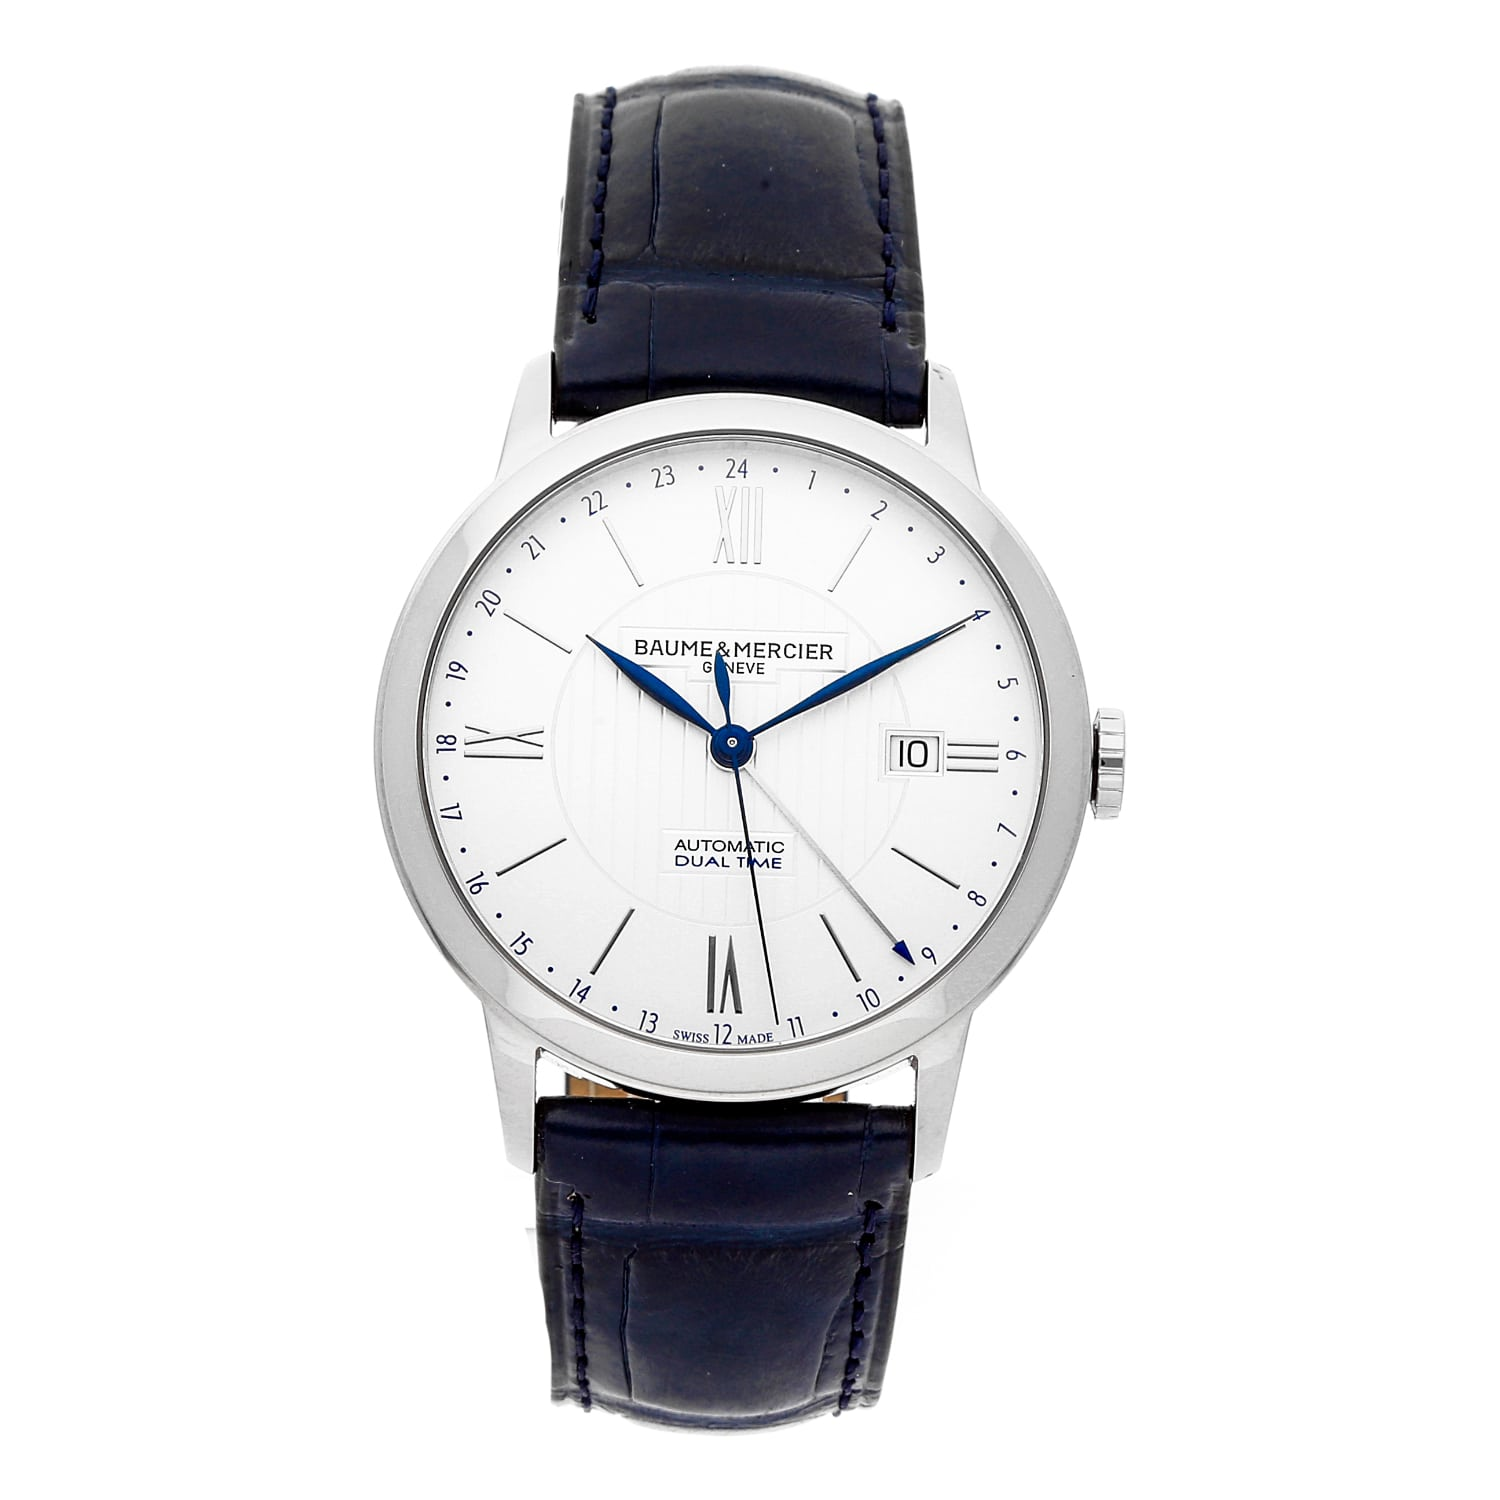 Baume & Mercier Watch via WatchBox